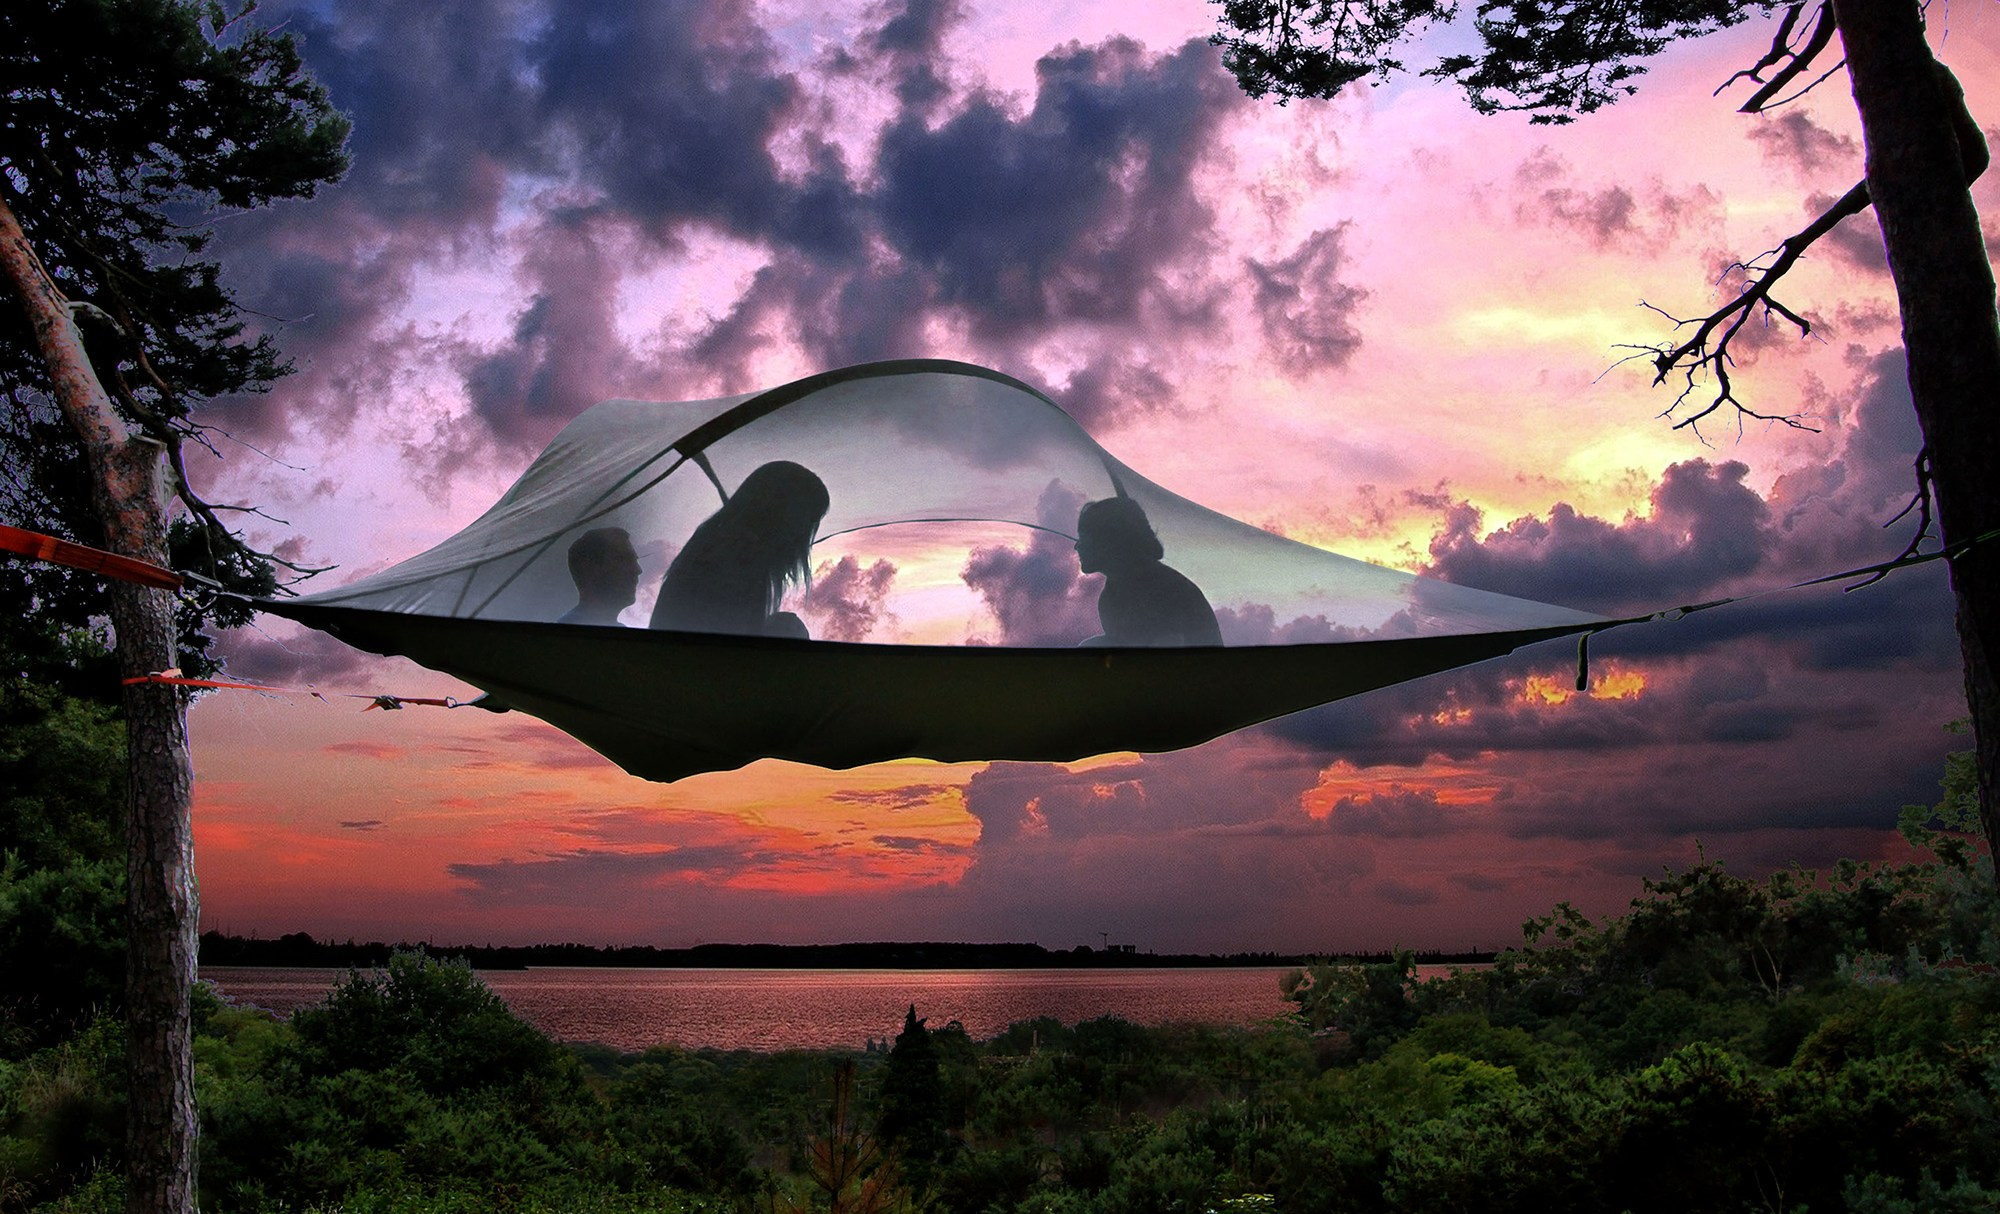 tenstsile stingray tree tent tentsile tents  u0026 hammocks   camping tent hammock review  rh   glacier national park travel guide